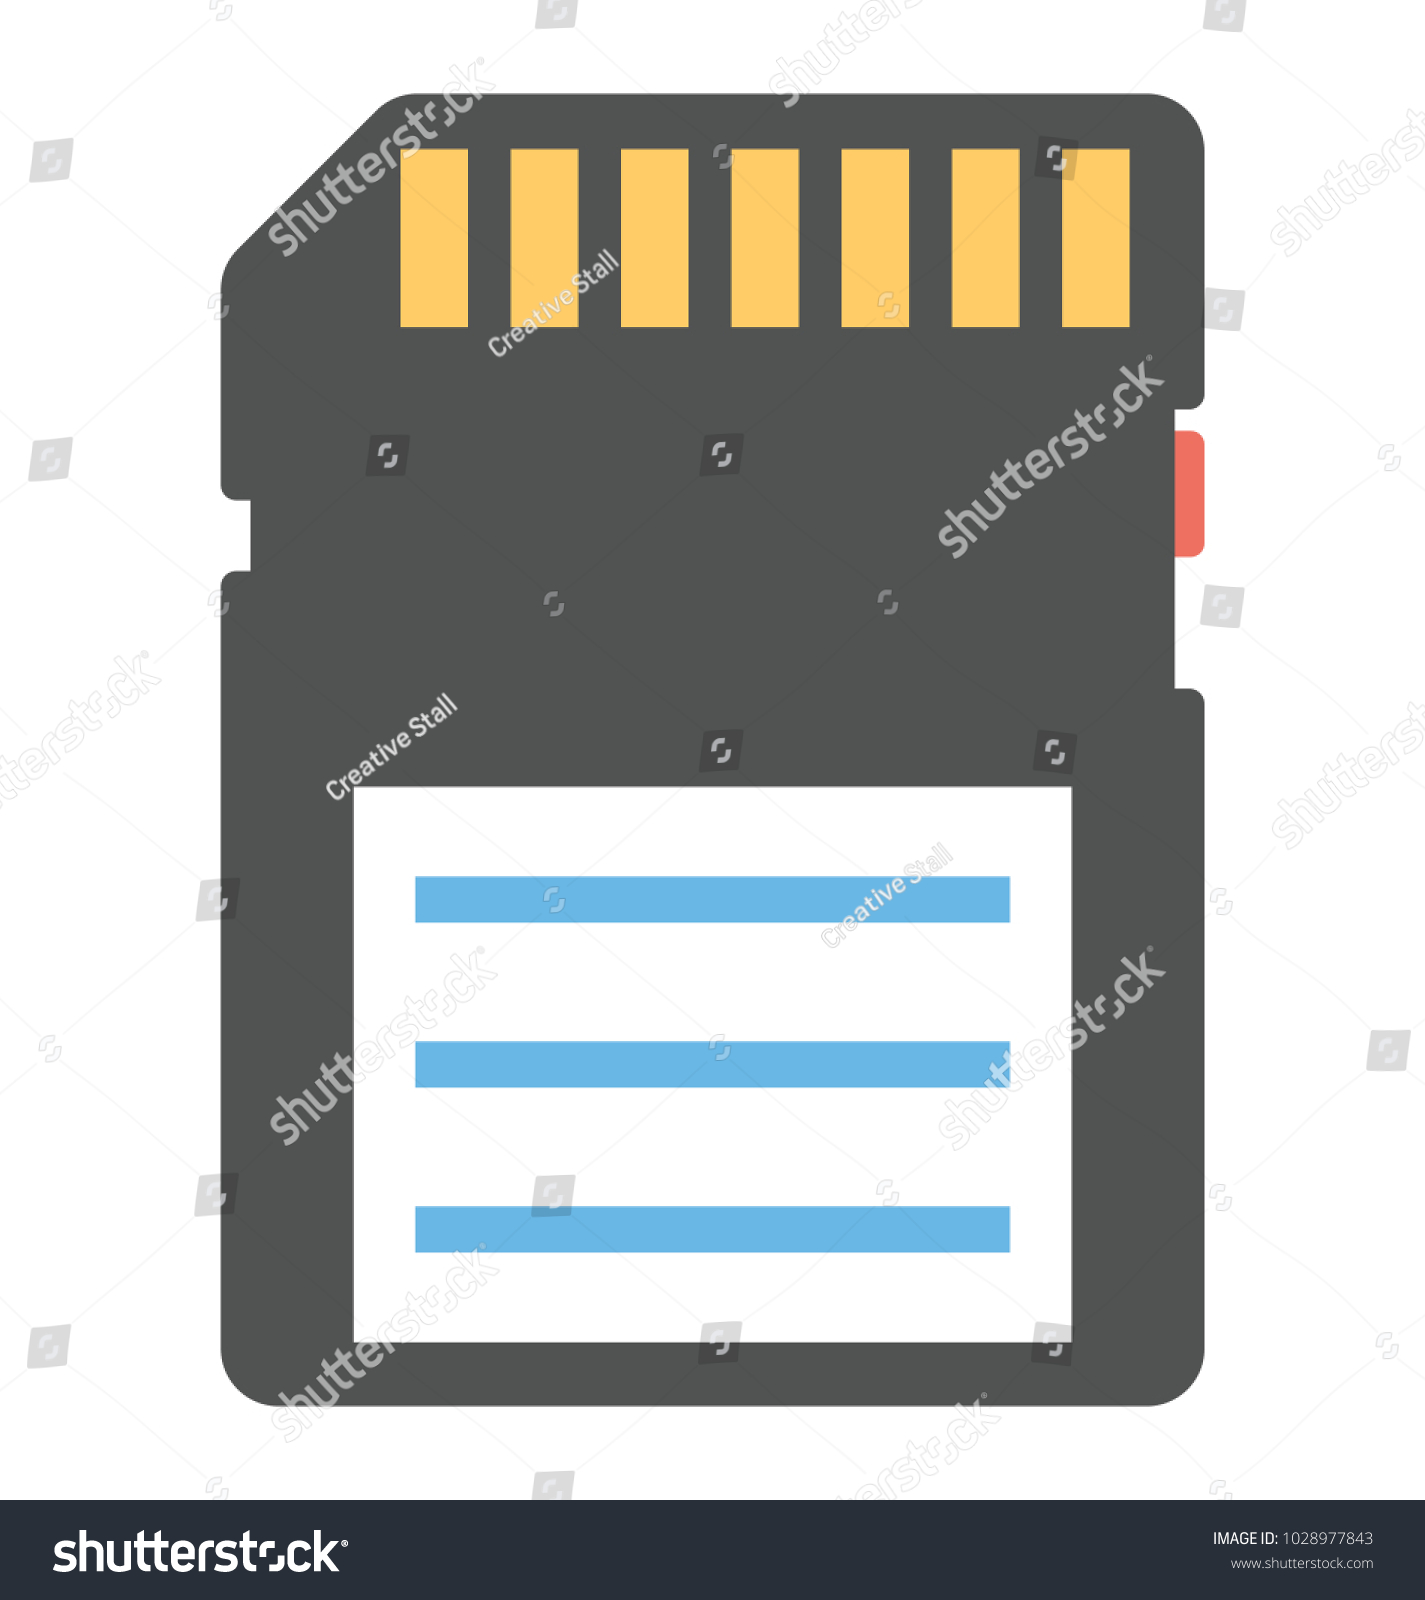 Sd card memory storage flat icon stock vector 1028977843 a sd card for memory storage flat icon pooptronica Choice Image